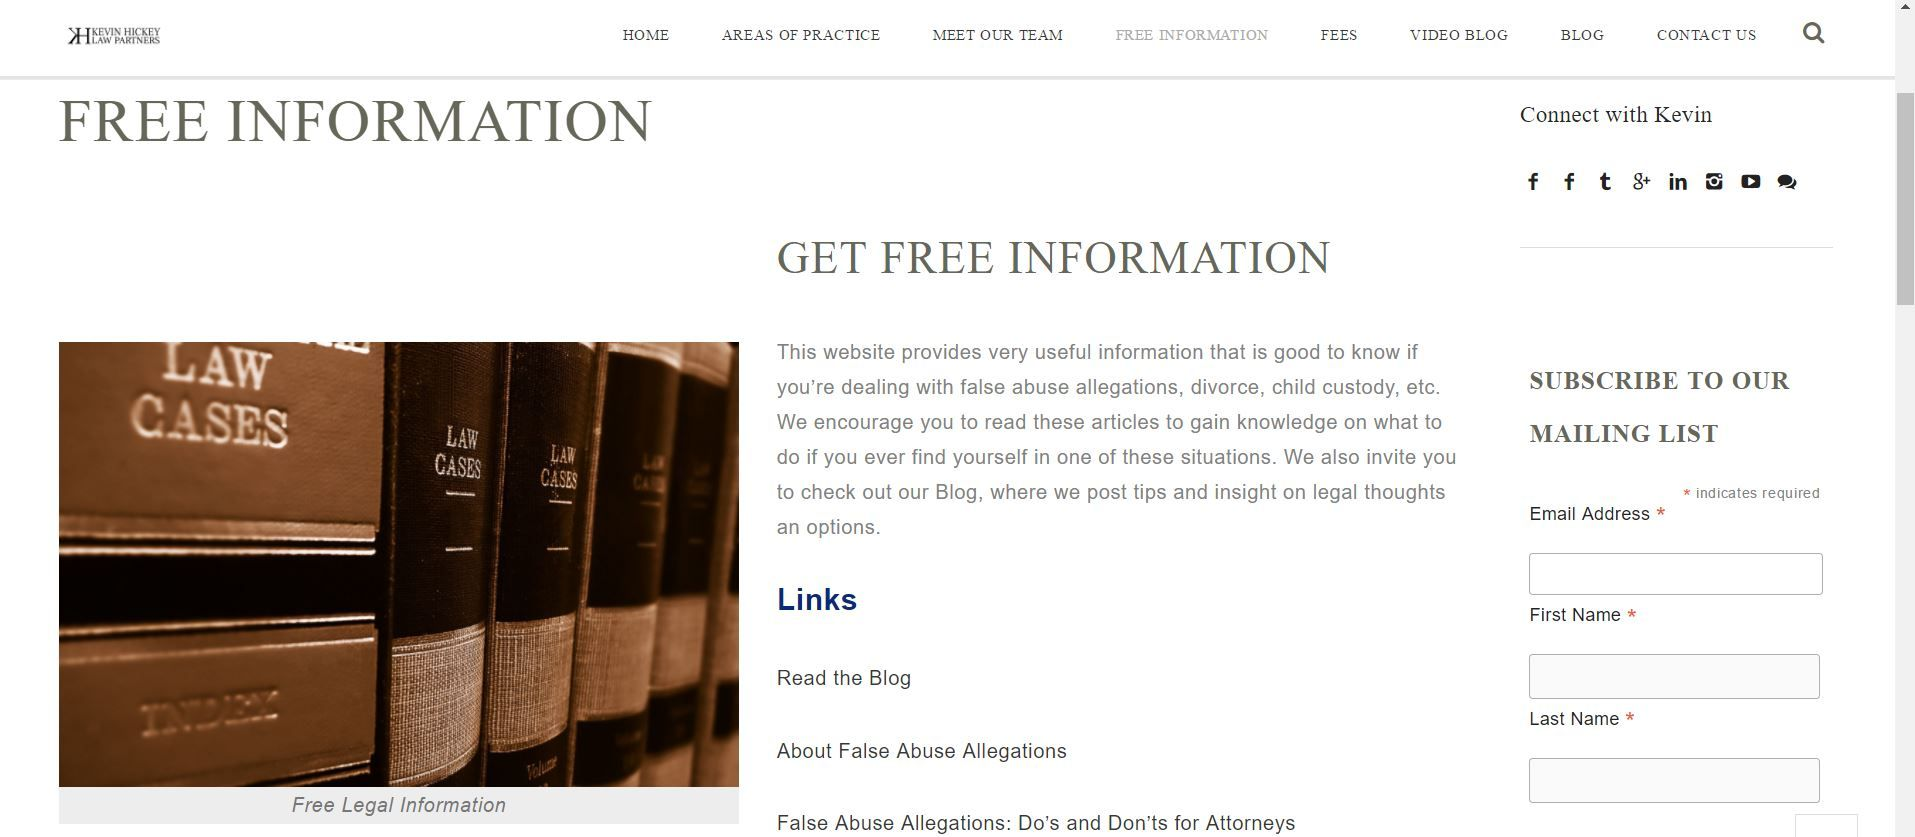 blog page from keving hickey law